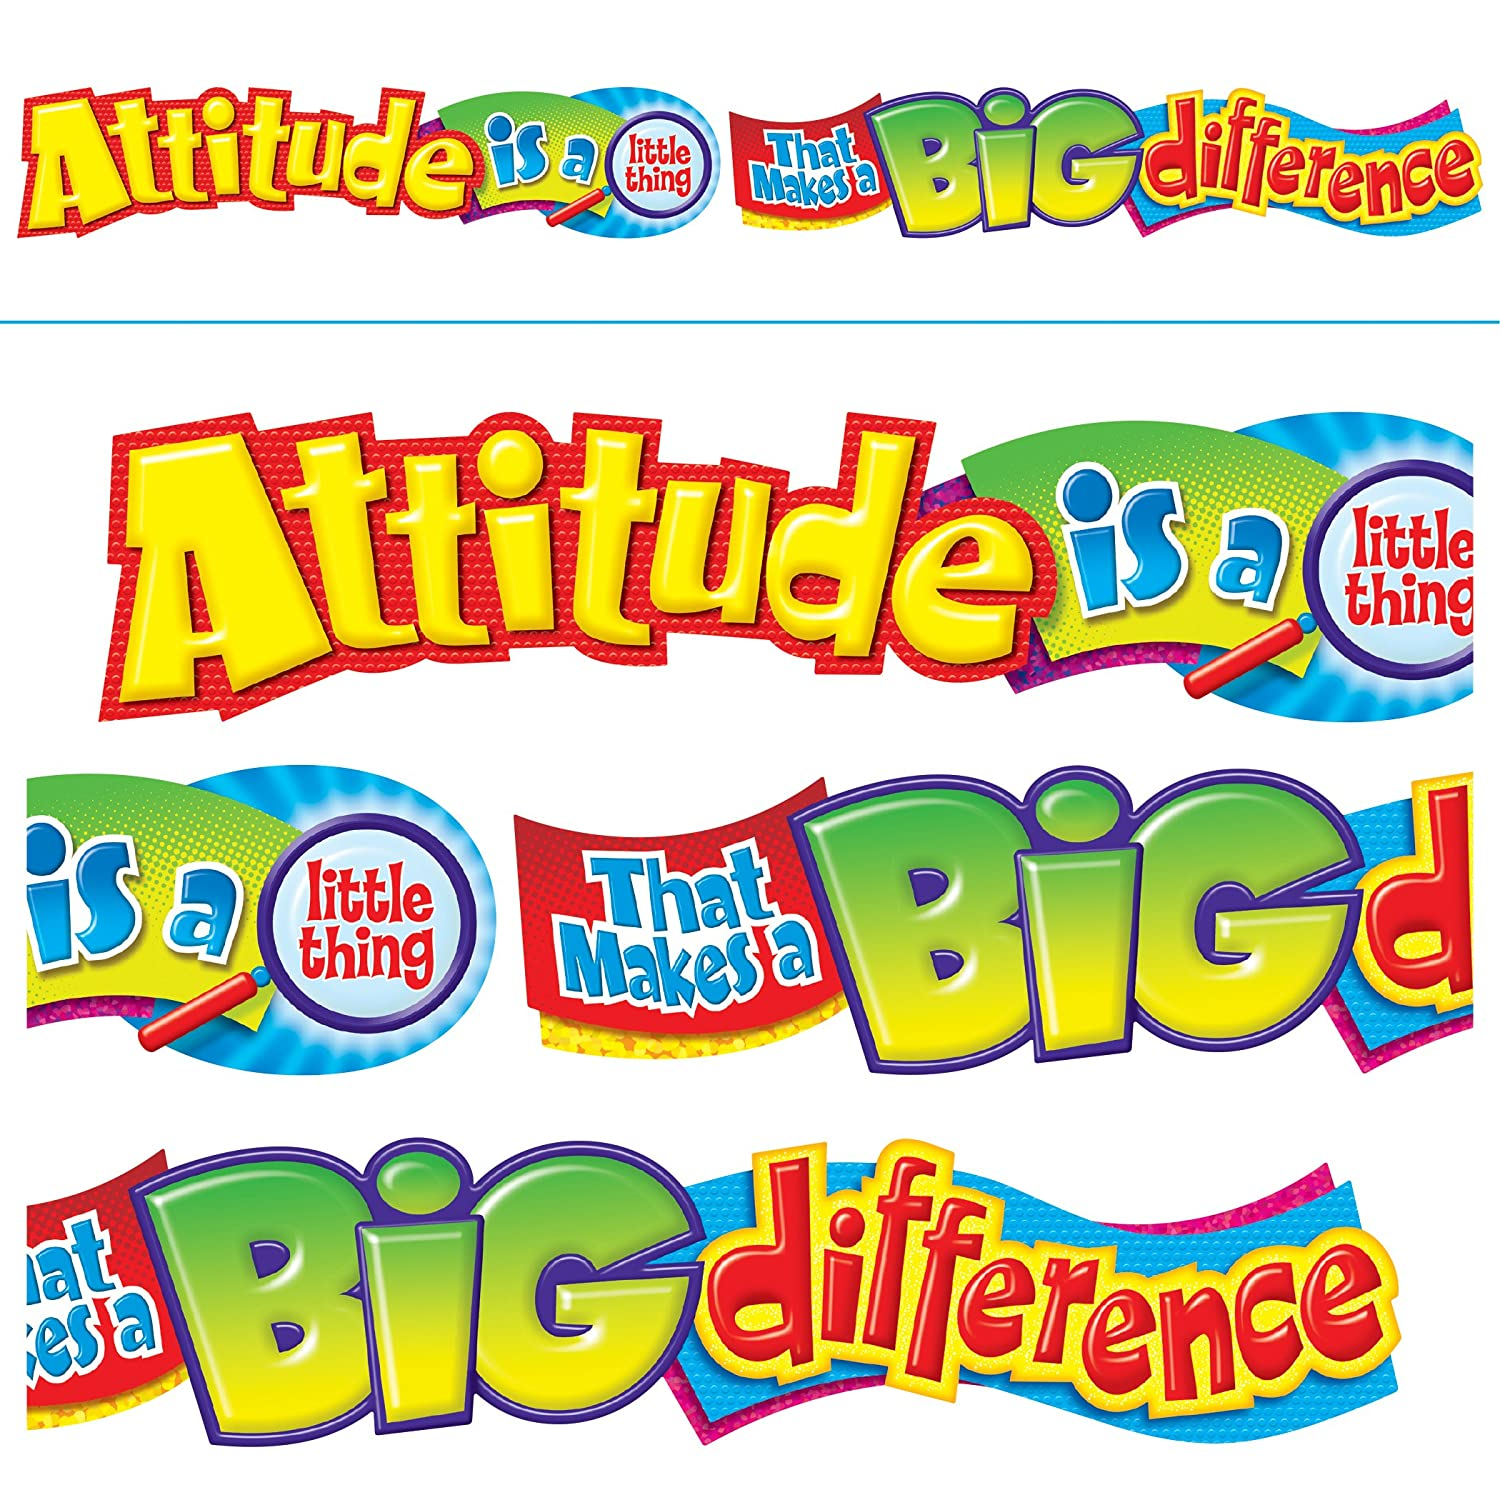 TREND enterprises, Inc. T-25044 Attitude is a little thing Quotable Expressions Banner, 10' 10'